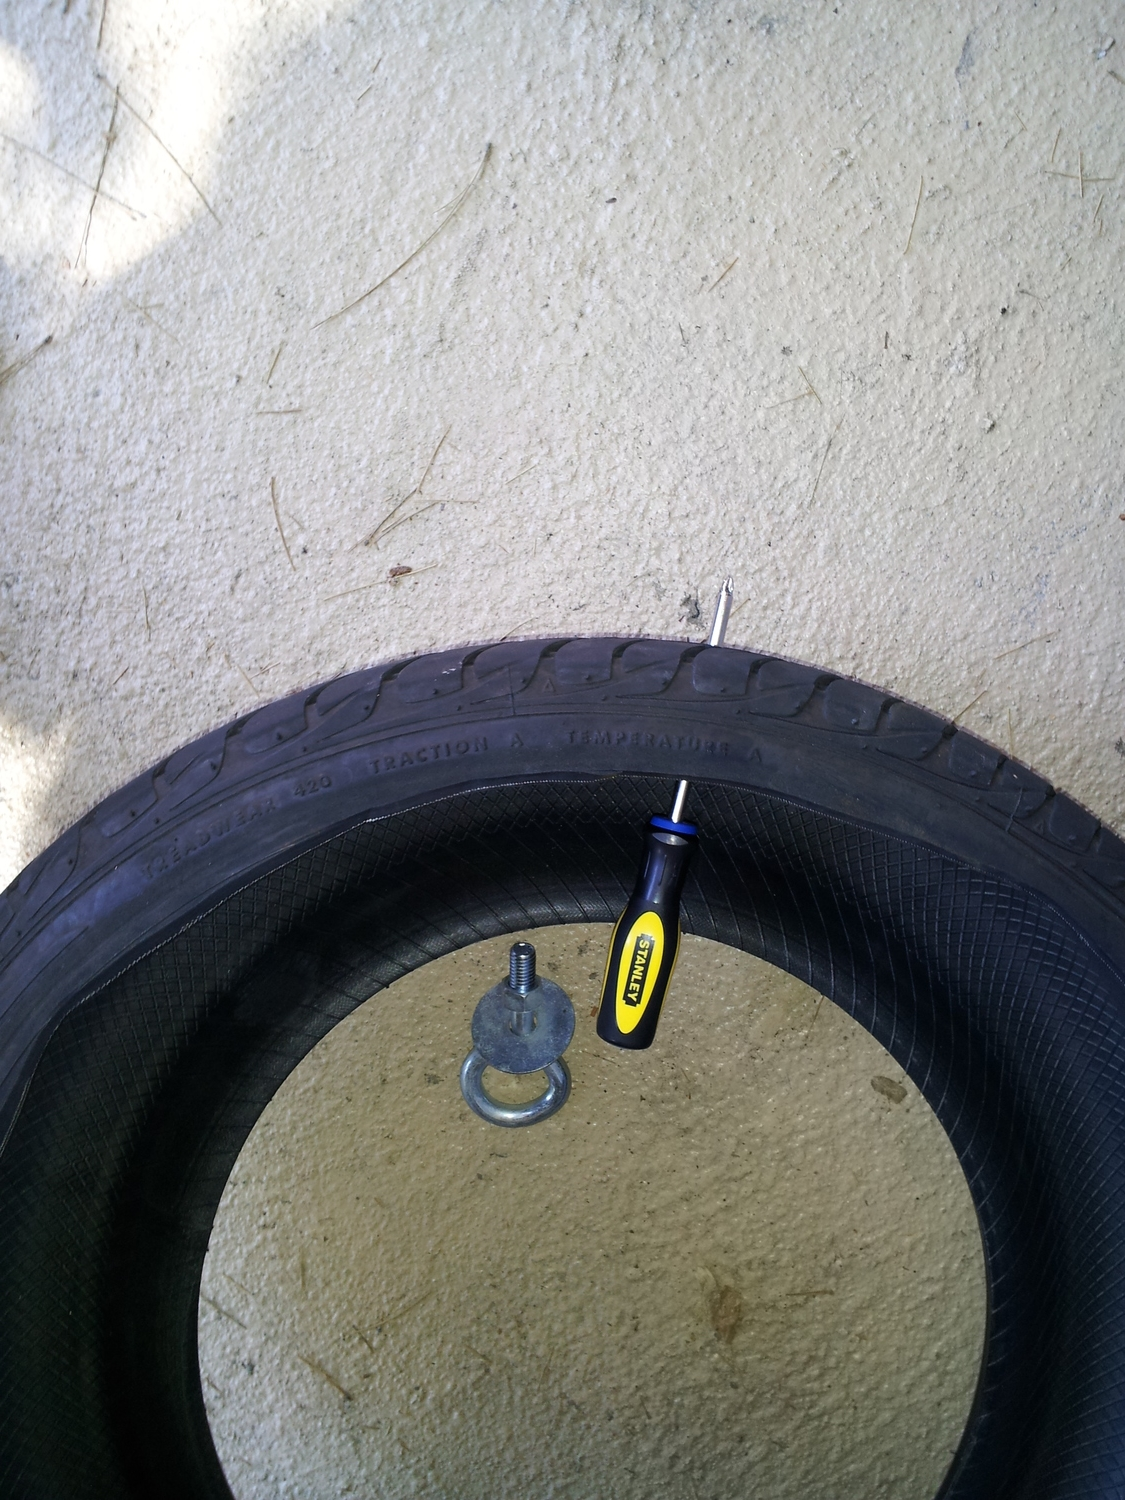 Make the hole in the tire sled for the eye bolt